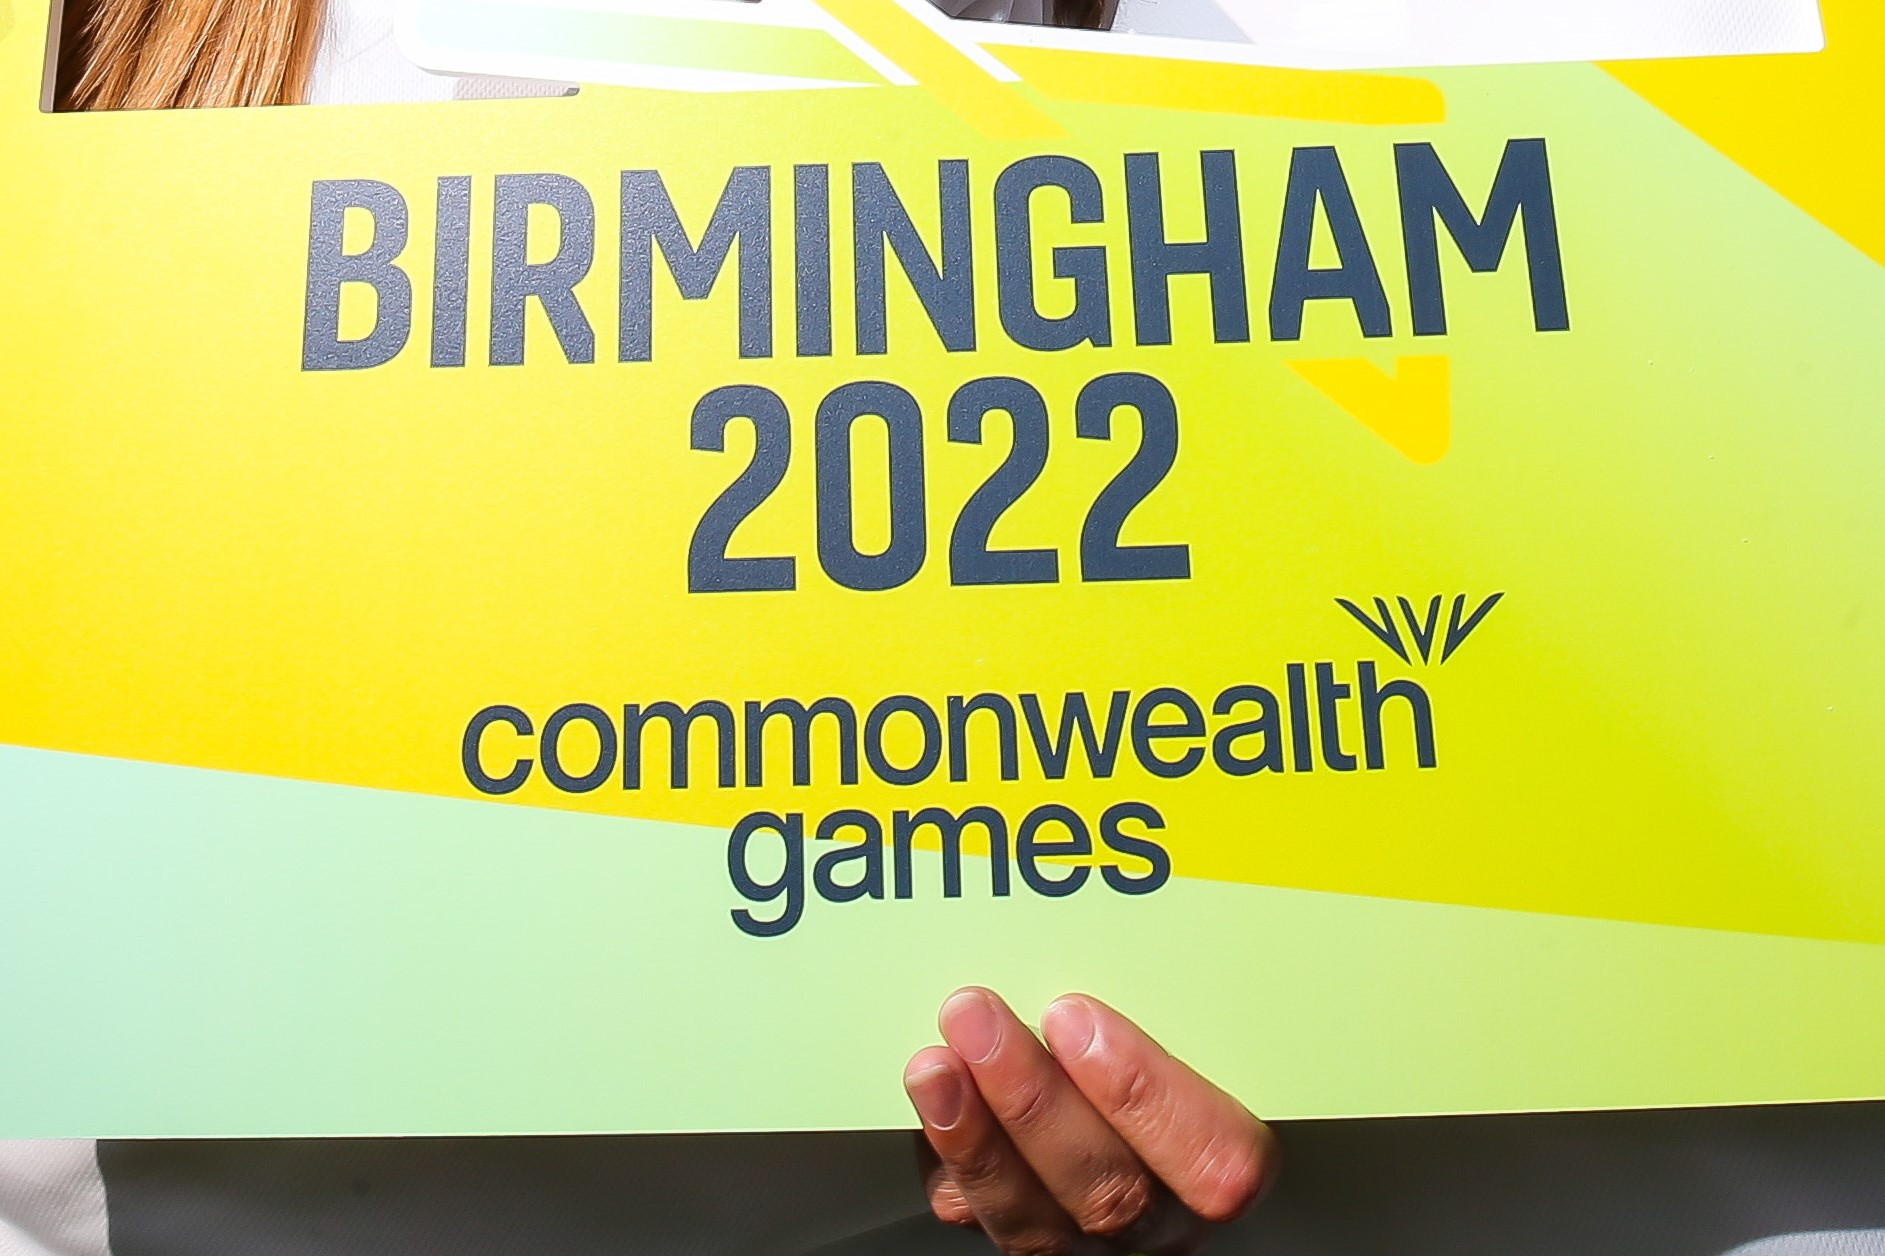 CGF Coordination Commission to review Birmingham 2022 progress this week